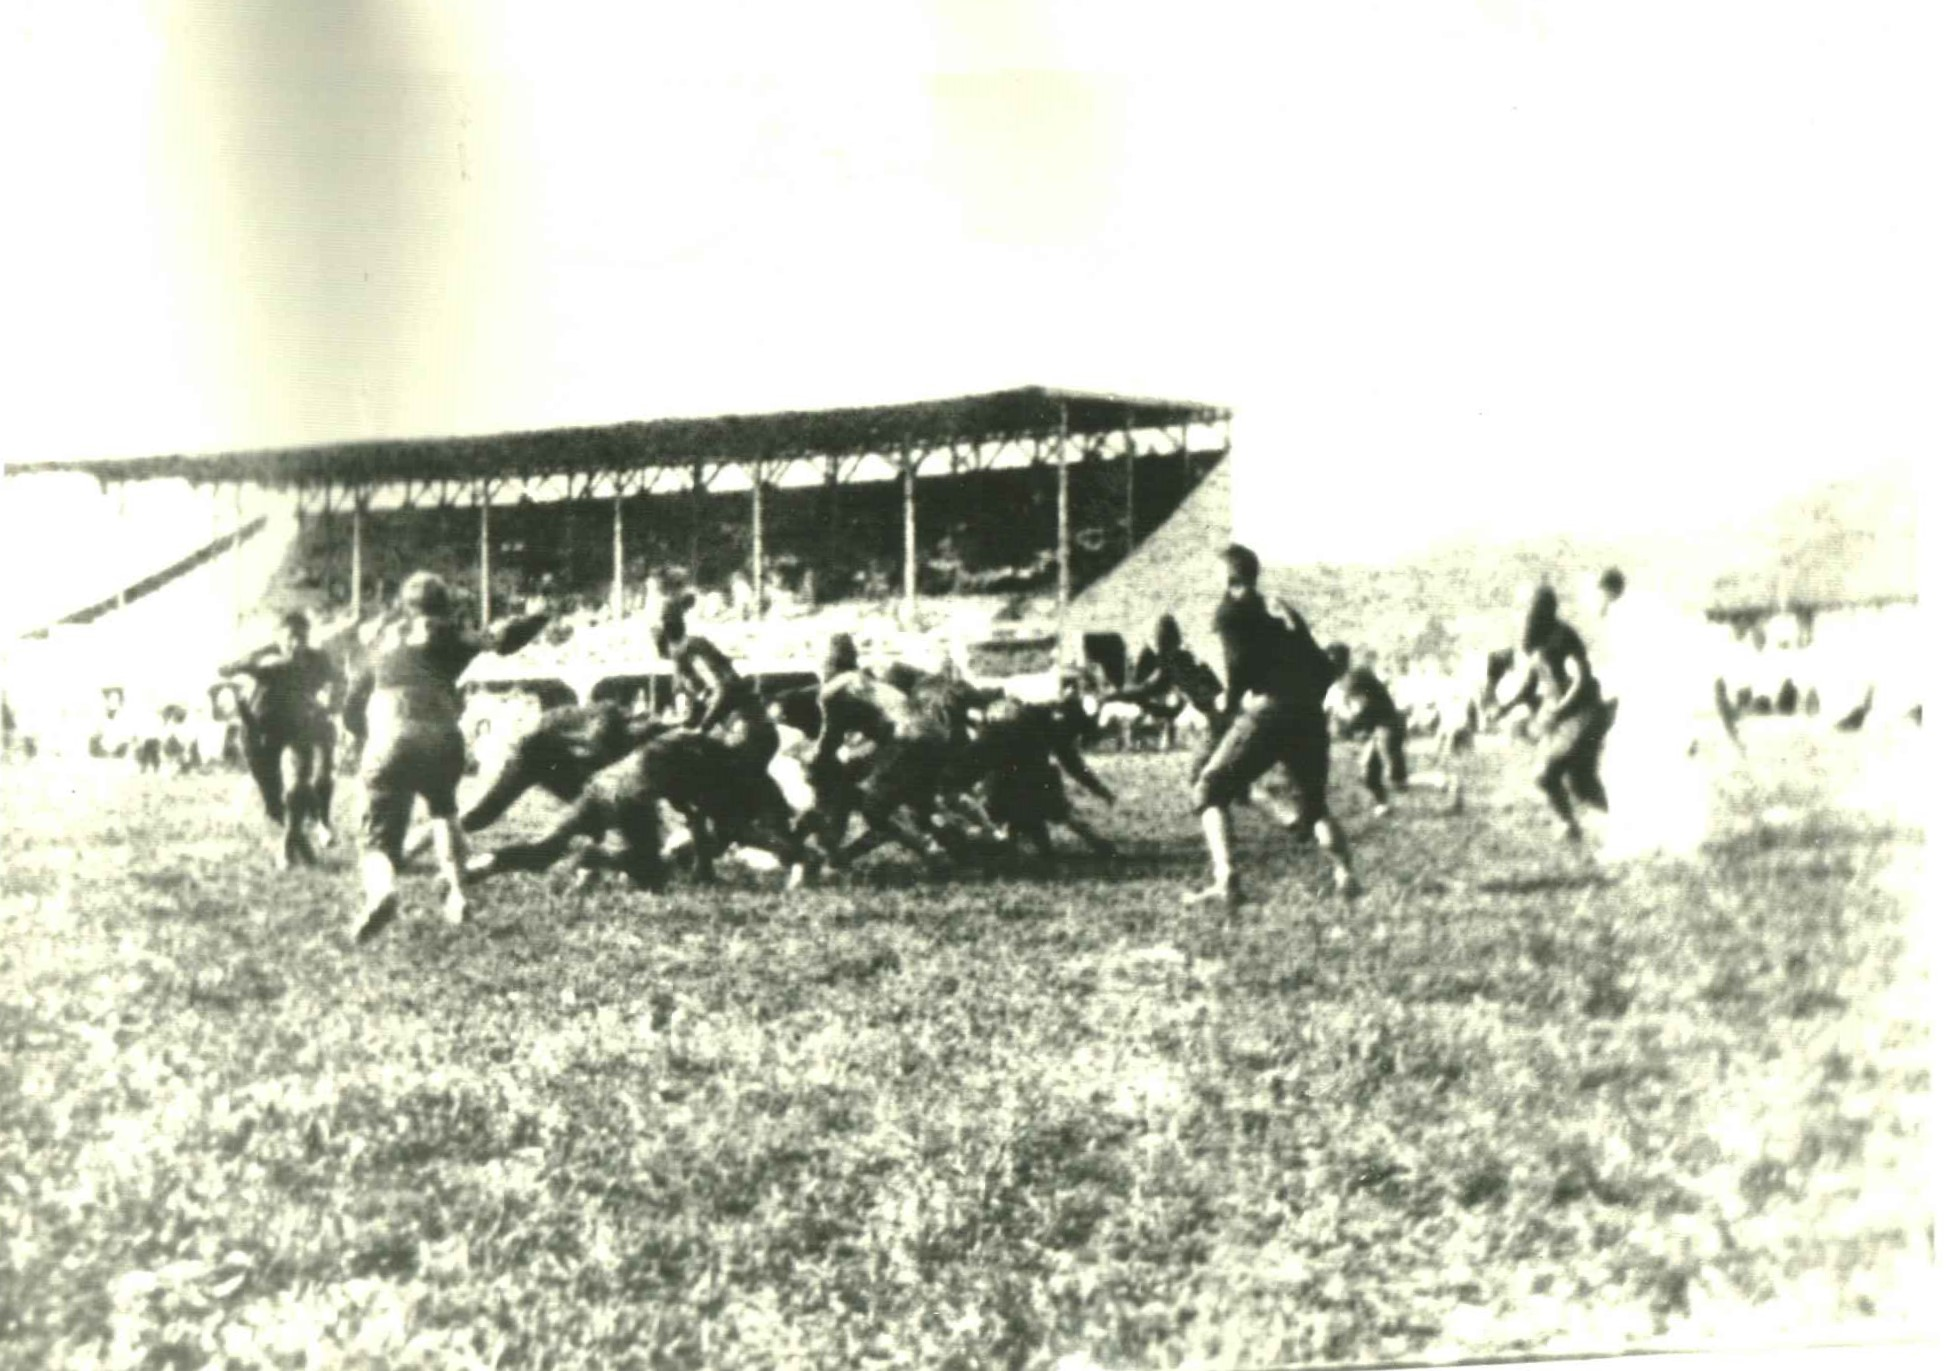 Ceredo-Kenova High School used the site of the racetrack for football games for several years after the track's closure. The massive grandstand was destroyed by a storm in 1940. Image obtained from the Ceredo Historical Society Museum.